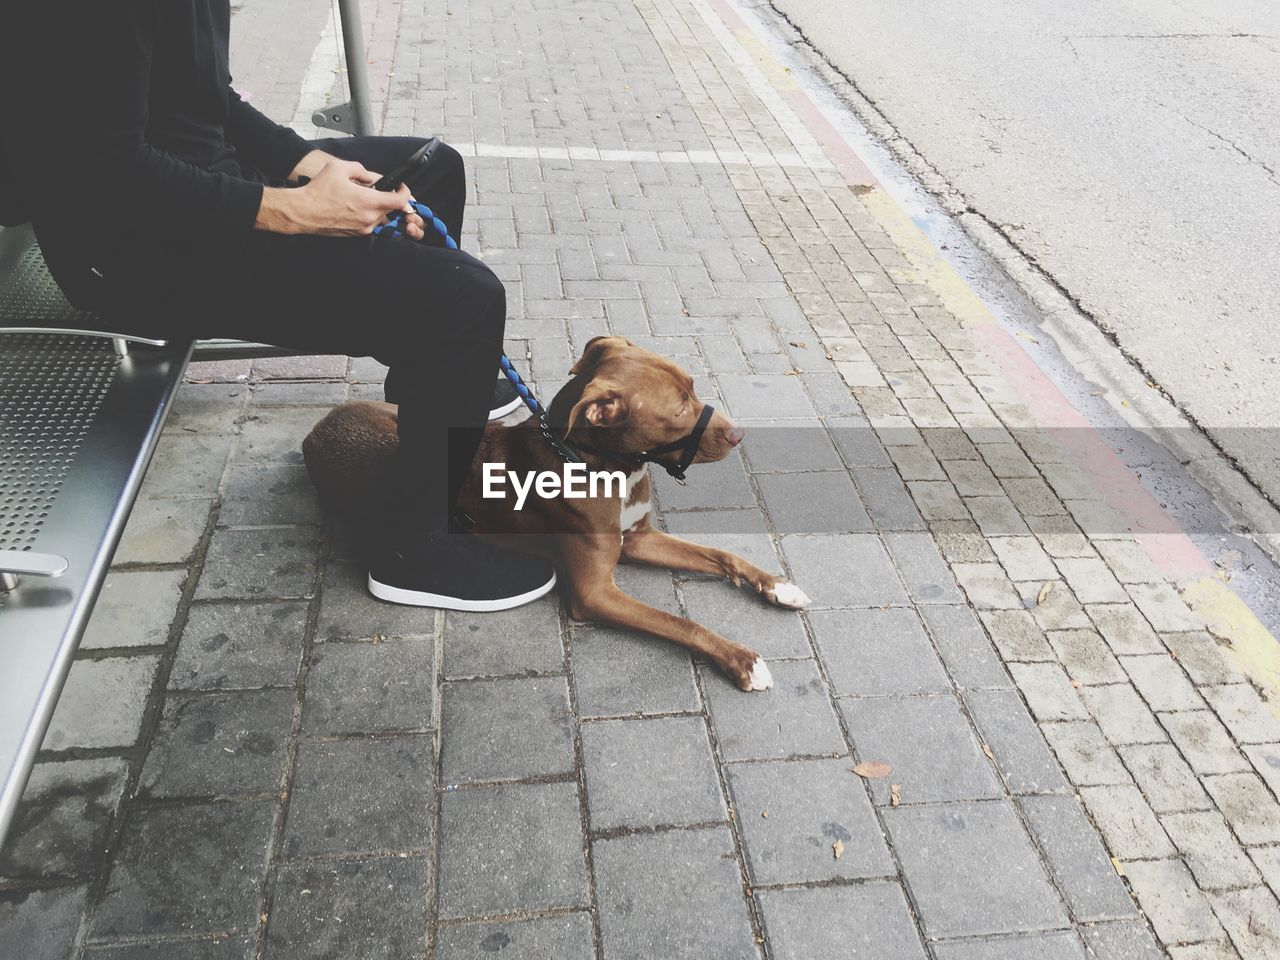 sitting, dog, real people, one animal, pets, outdoors, one person, day, technology, wireless technology, domestic animals, sidewalk, low section, communication, lifestyles, mammal, men, people